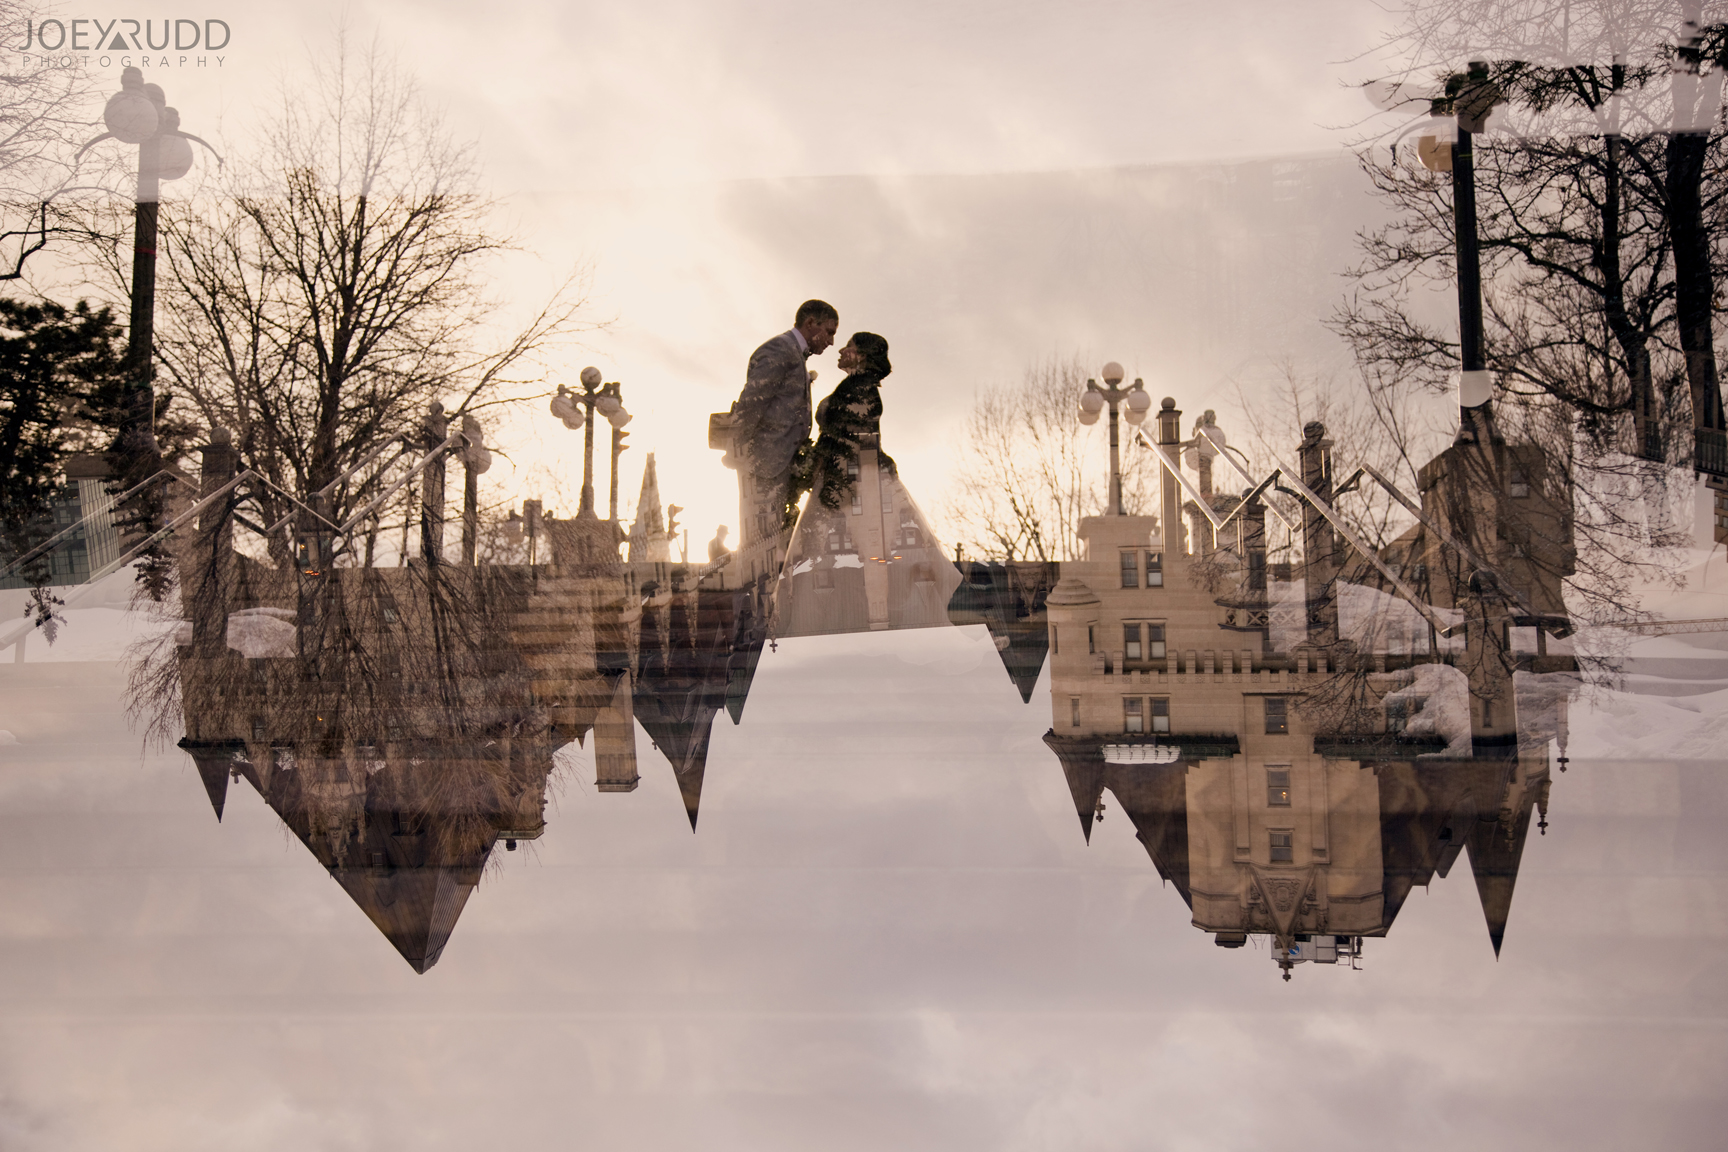 Double Exposure Photo by Joey Rudd Photography Award Winning Ottawa Wedding Photographer Downtown Ottawa Wedding Byward Market